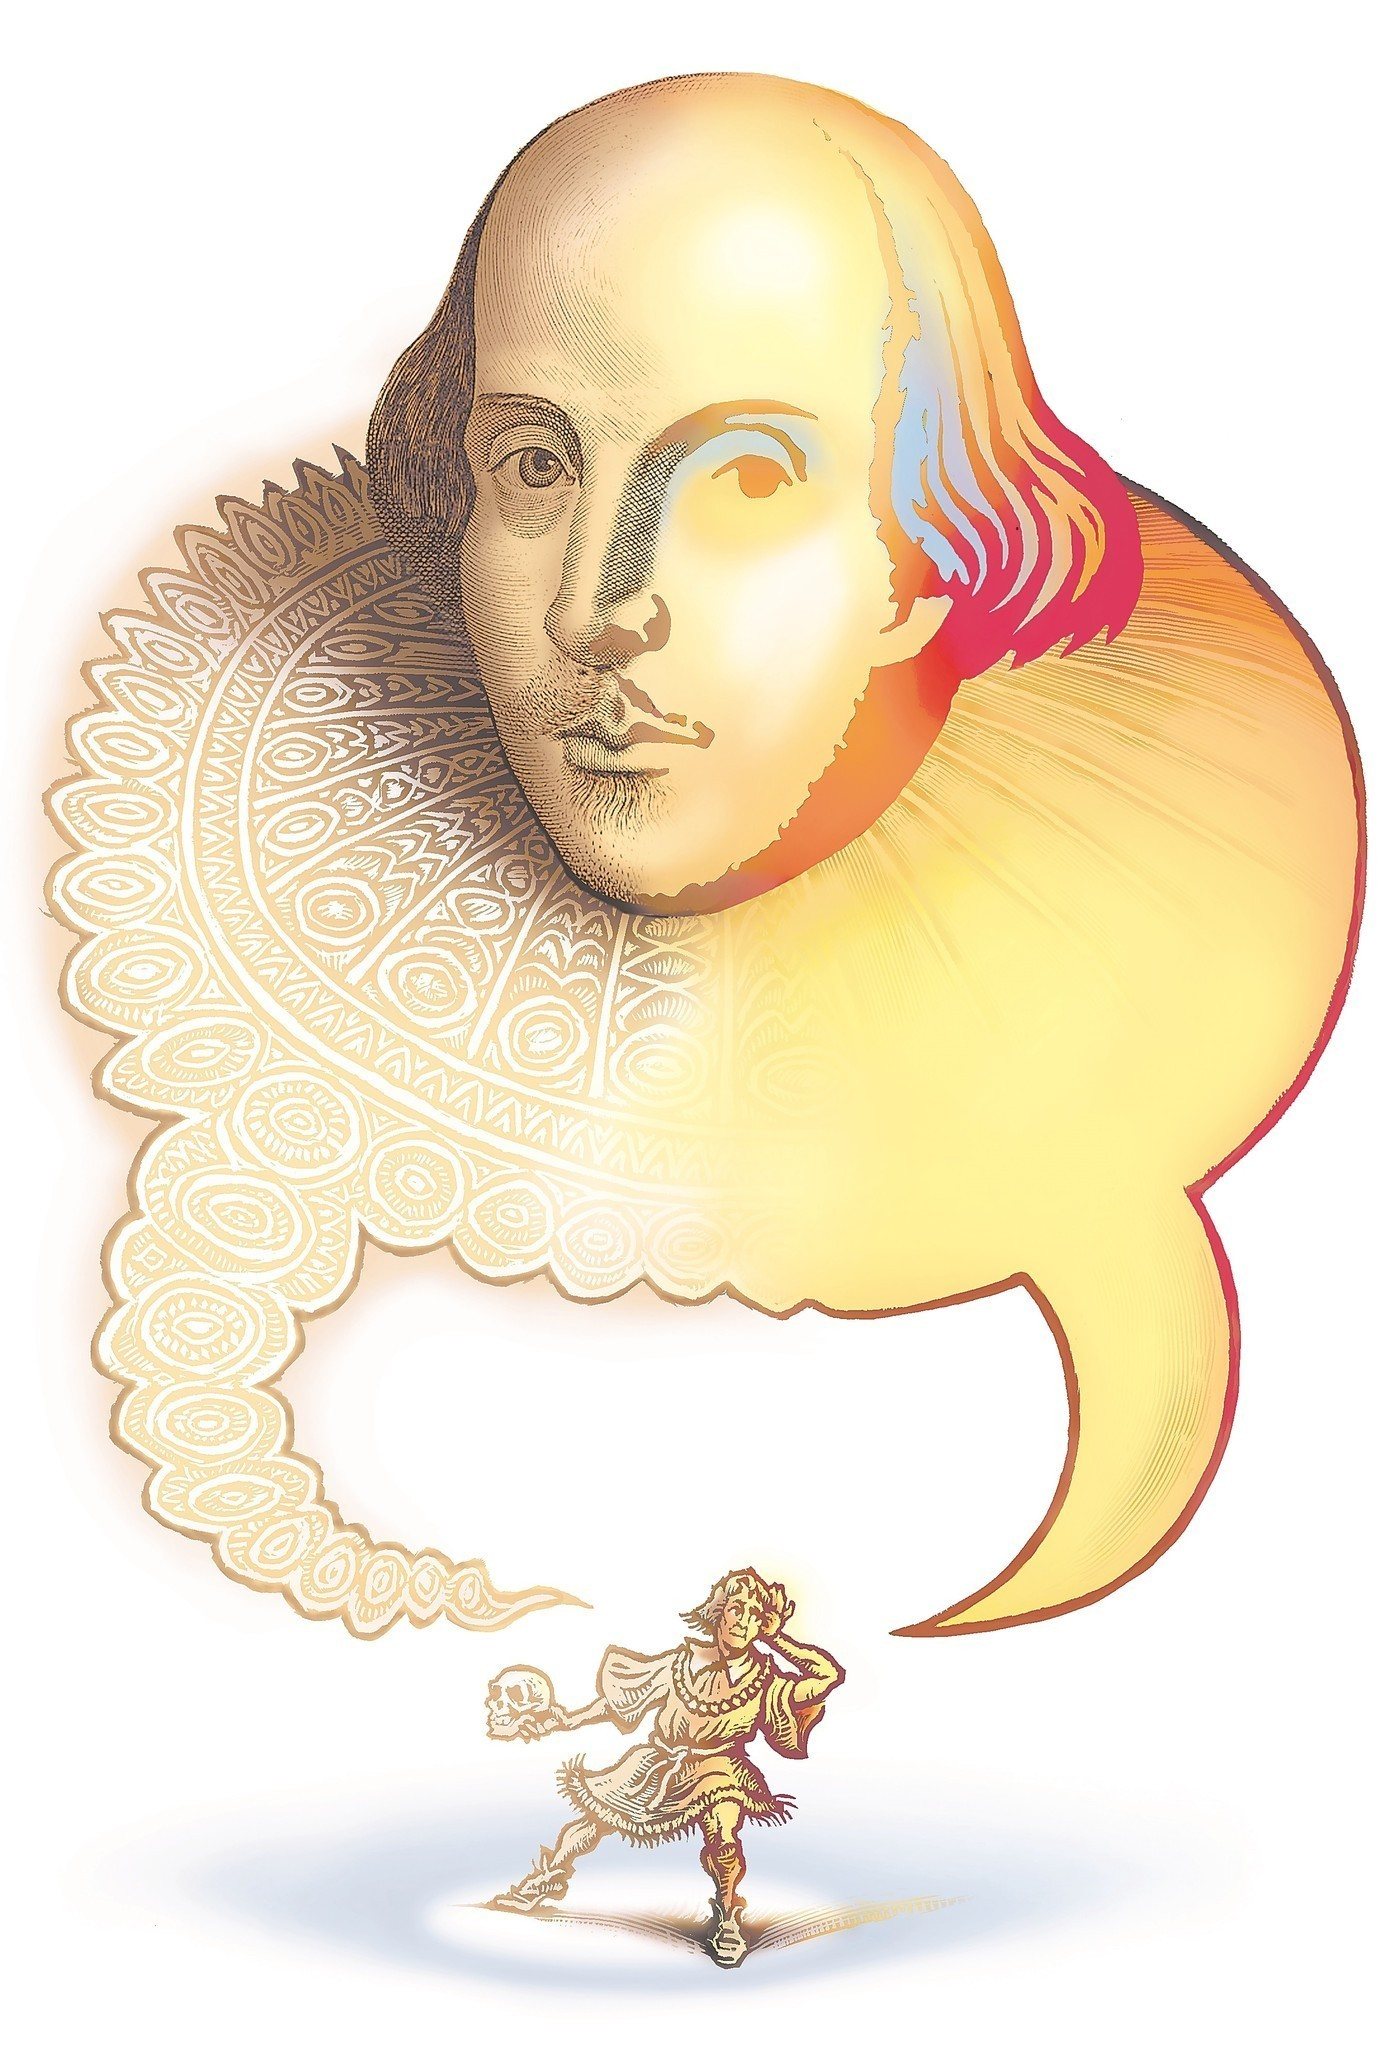 shakespeare s work has thrived for years here s how to shakespeare s work has thrived for 400 years here s how to improve it la times